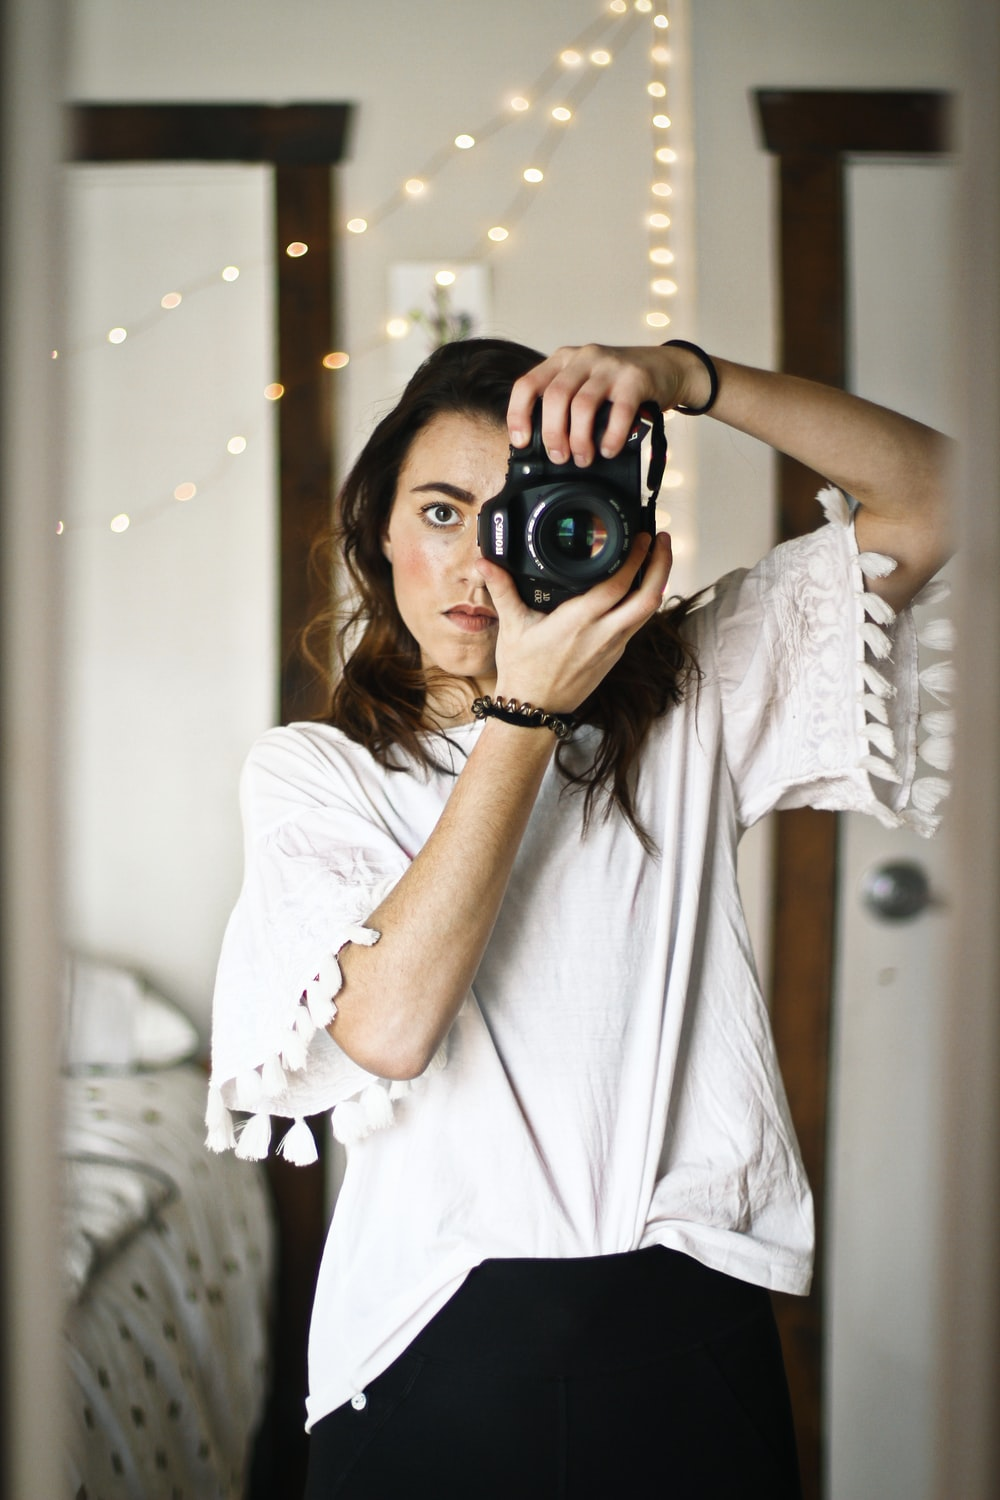 woman in white top looking through the camera peephole